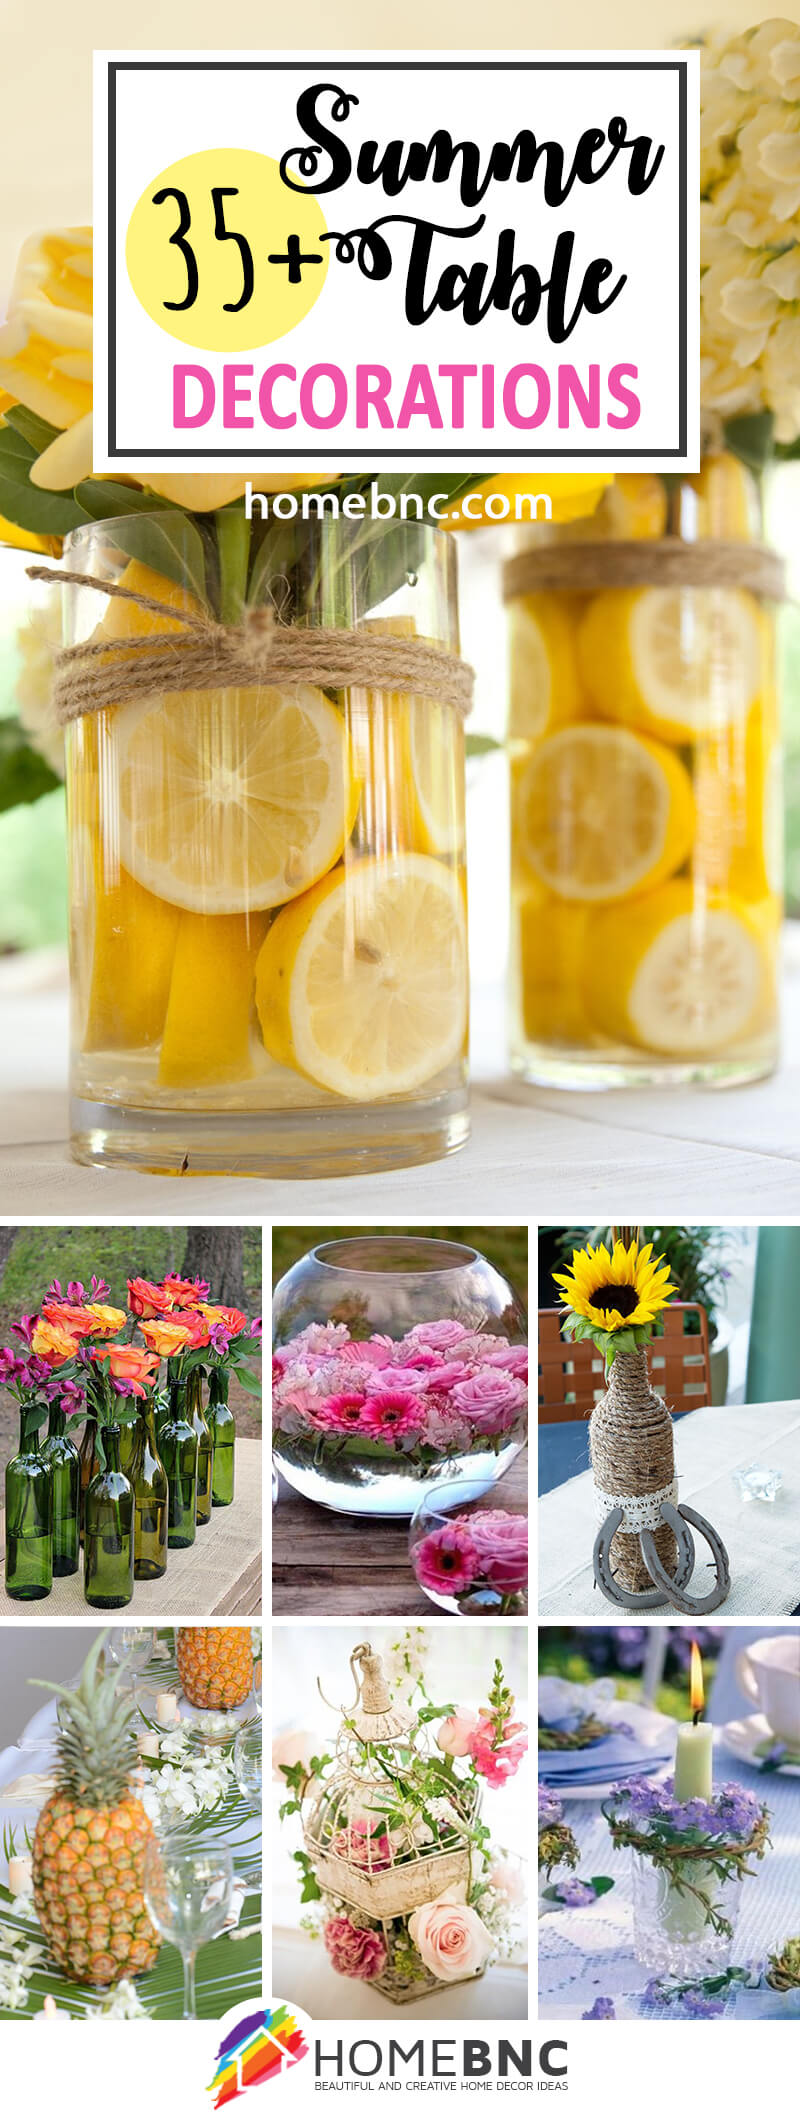 Summer Table Decoration Ideas